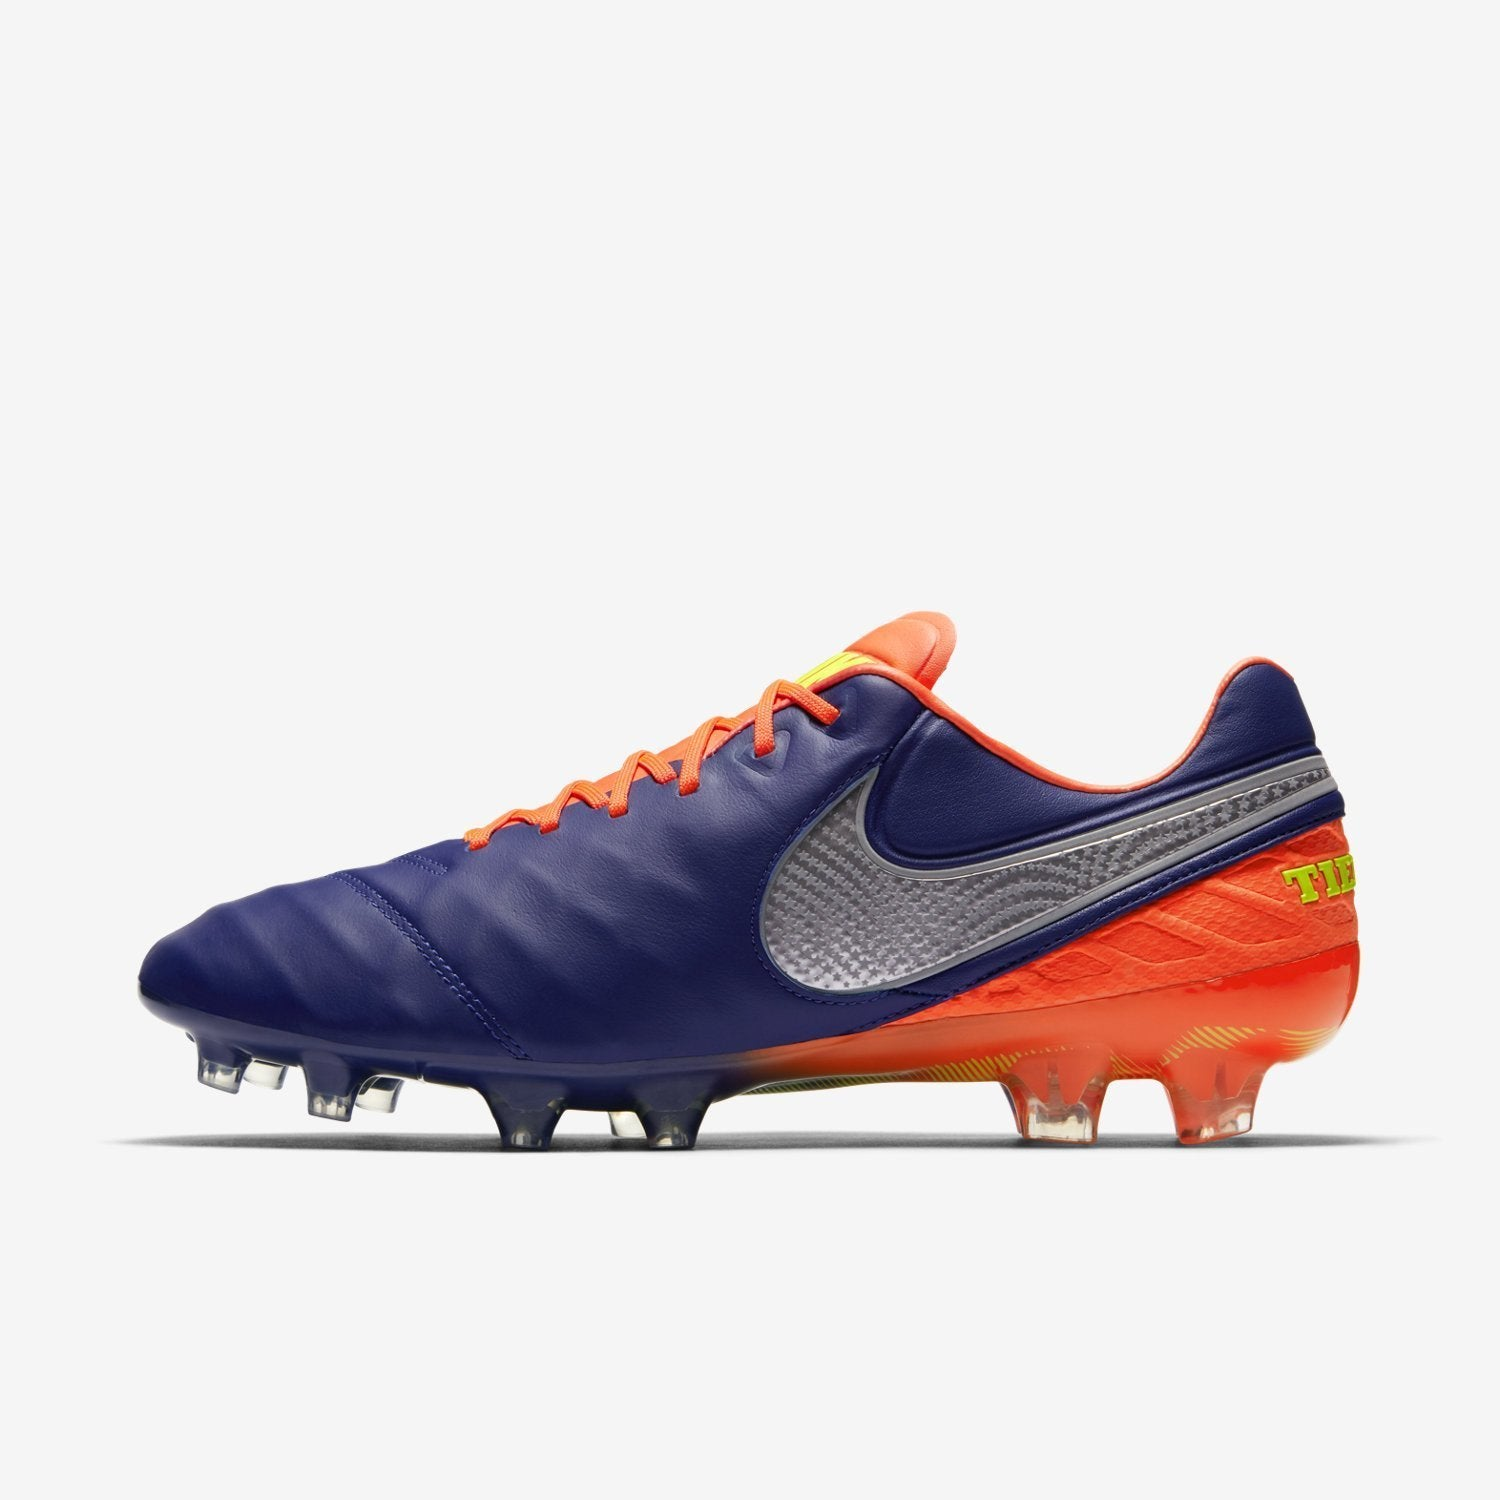 watch 8f15e 8f0f4 Nike Tiempo Legend VI FG Soccer Cleats Deep Royal Blue Total Crimson